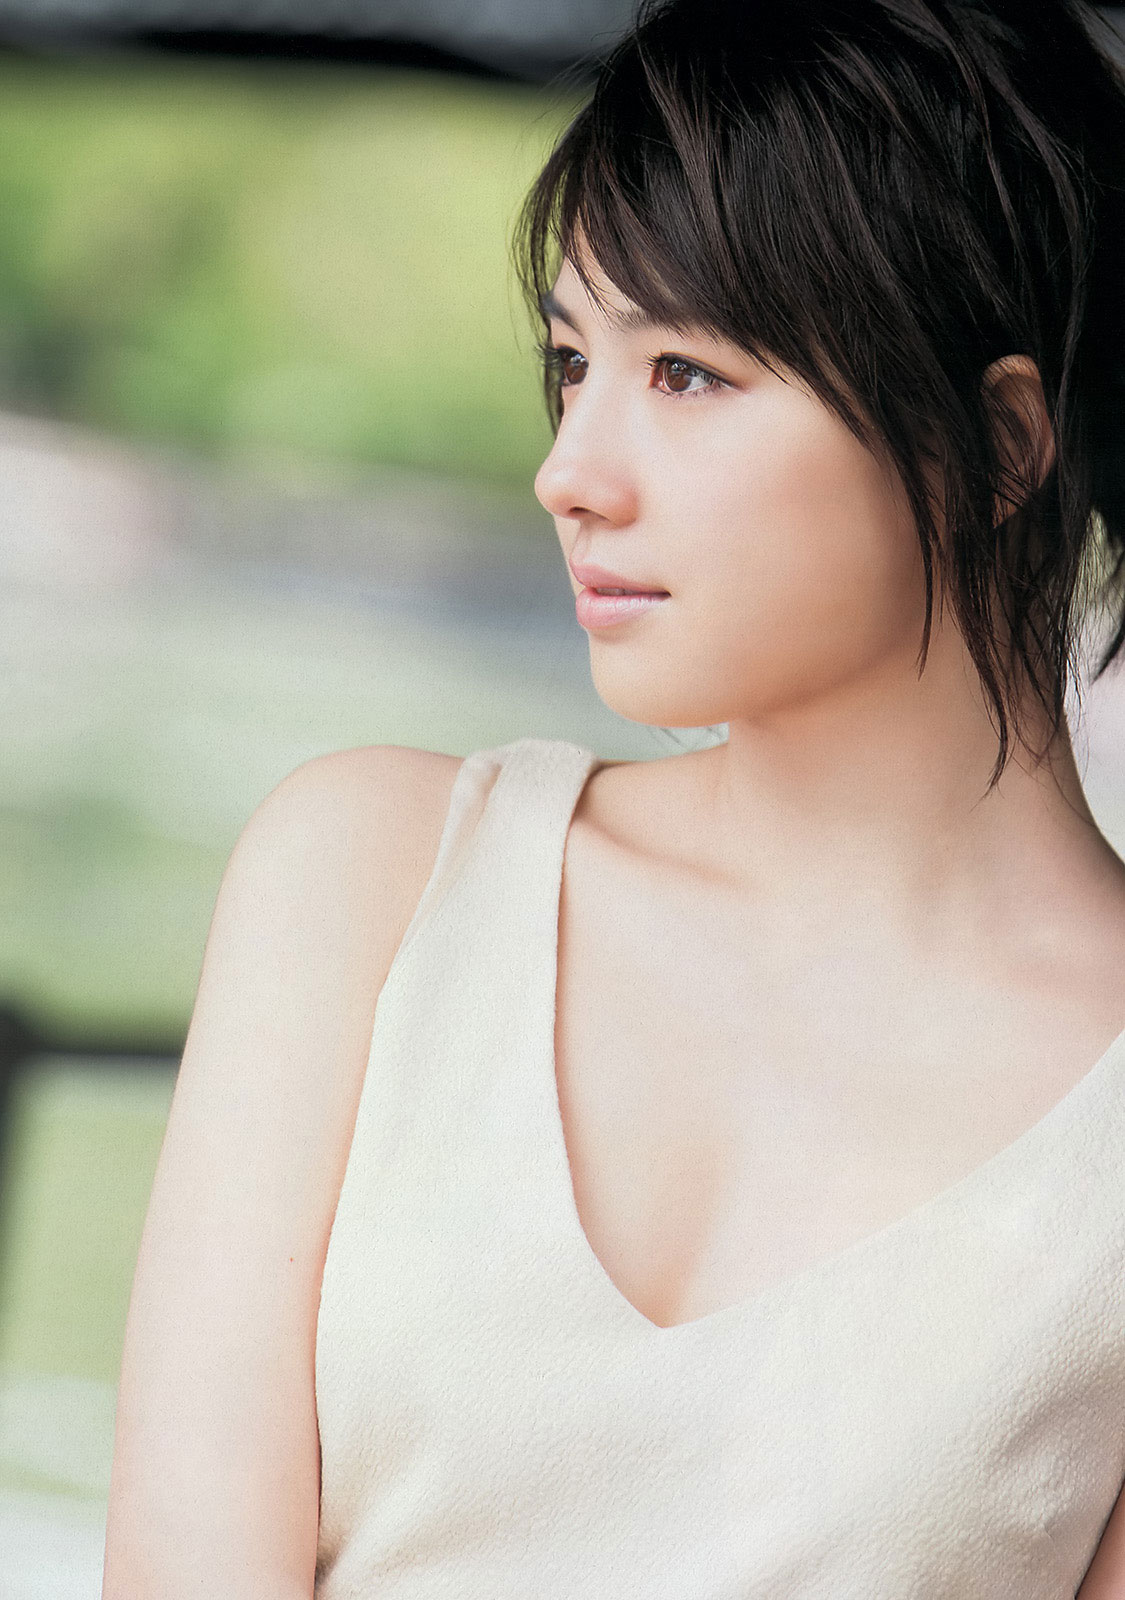 misawa asian personals 100% free online japanese dating, personal ads, and matchmaking service for singles at japanesefriendsnet visit us to find your love for free.